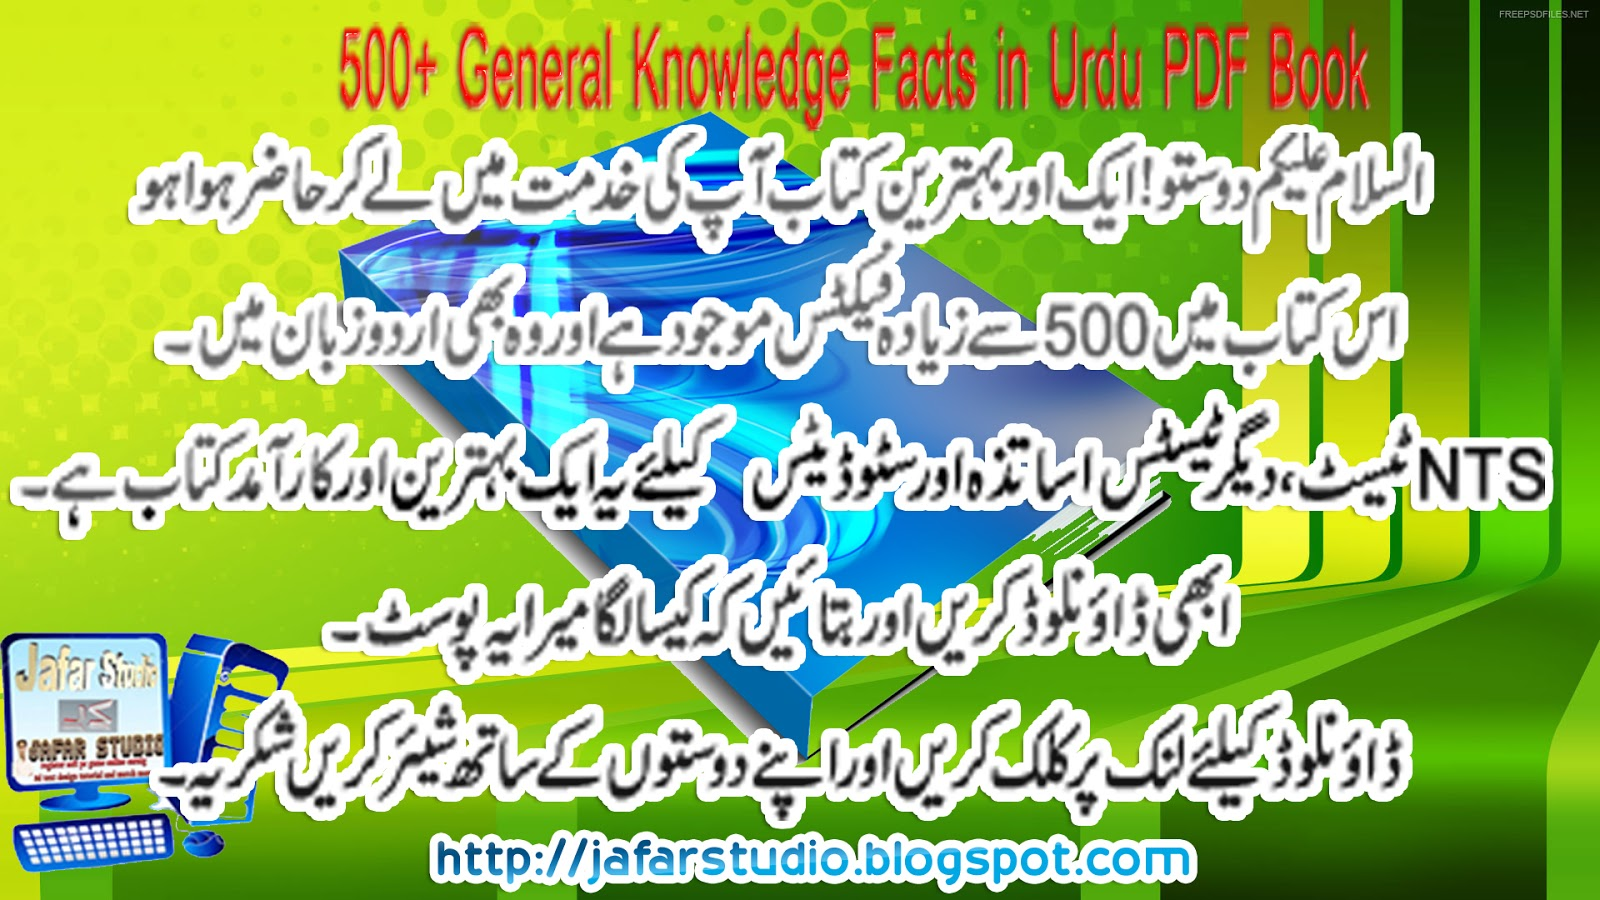 Calligraphy Fonts Books Pdf General Knowledge In Urdu Pdf Book Jafarstudio